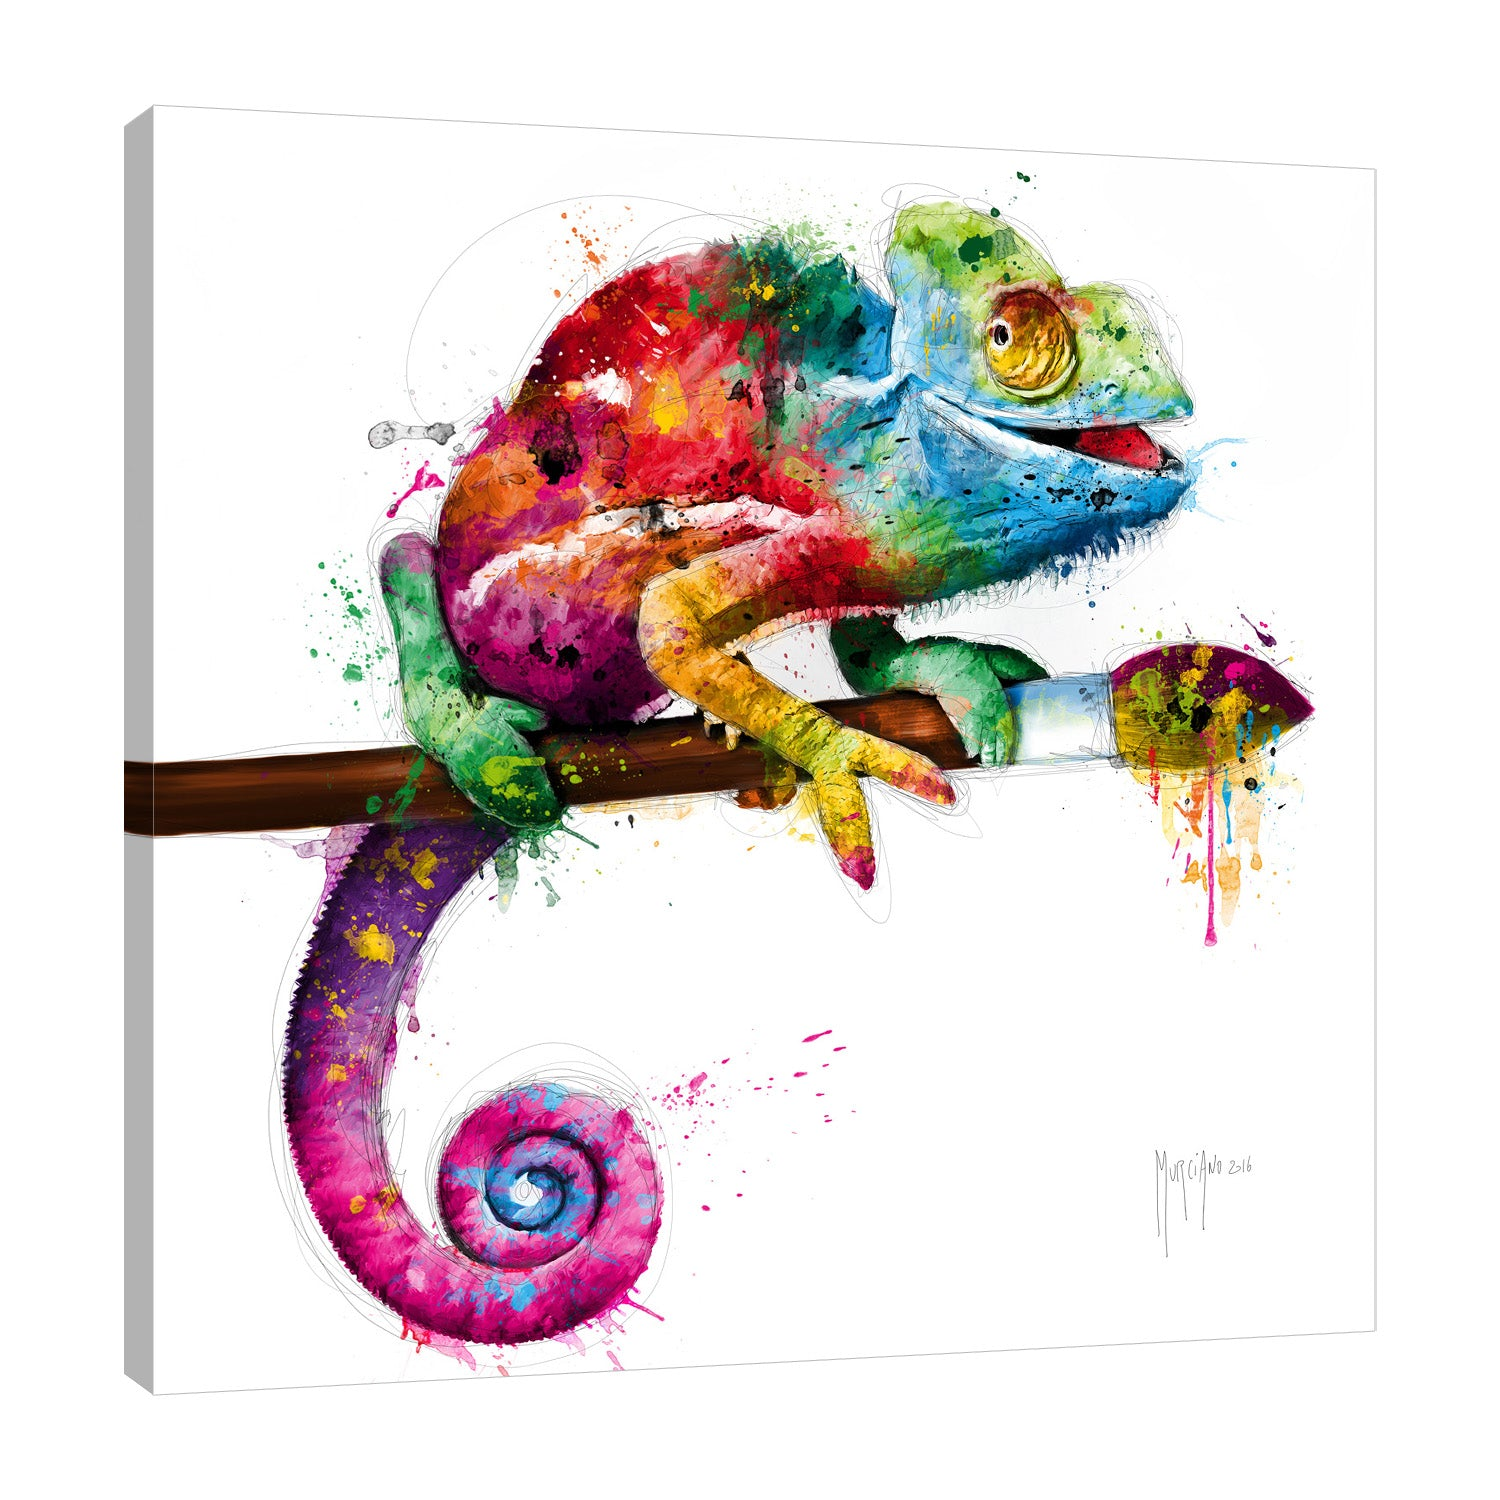 Patrice-Murciano,Modern & Contemporary,Animals,camflouge,iguana,paintbrush,paint drips,Red,Mist Gray,Charcoal Gray,Coral Pink